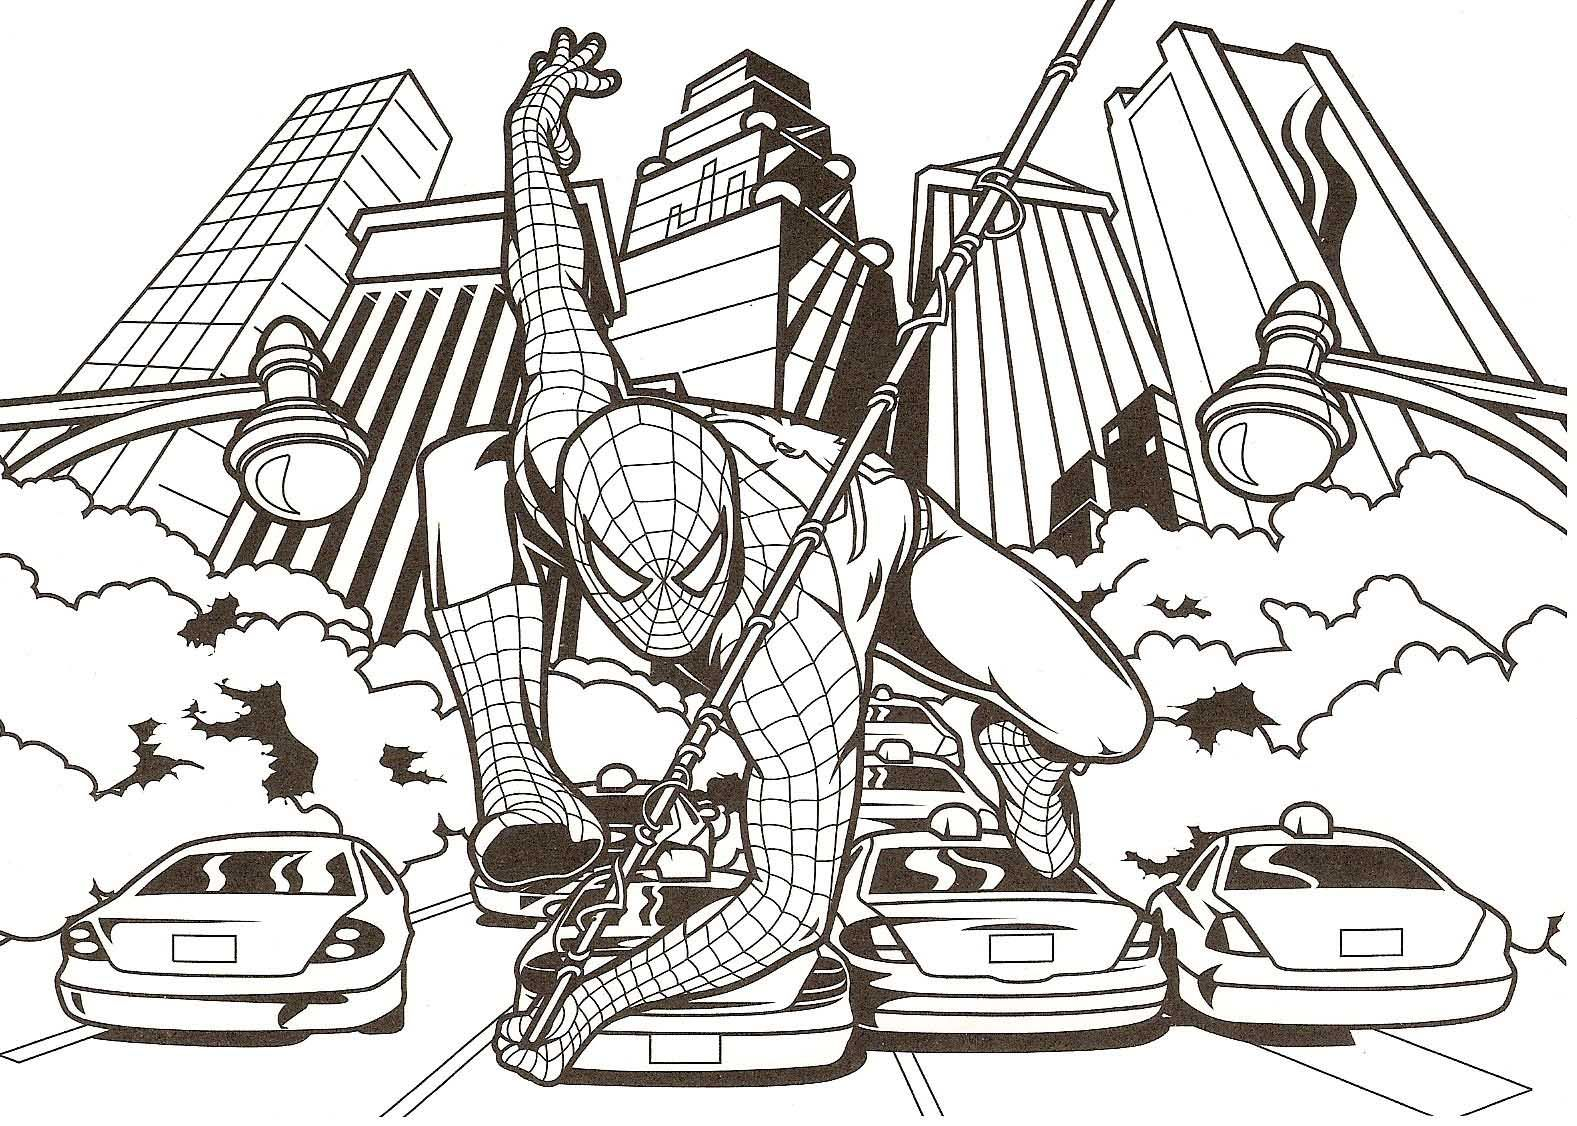 Colouring in pages games - Spider Man Coloring Pages Games